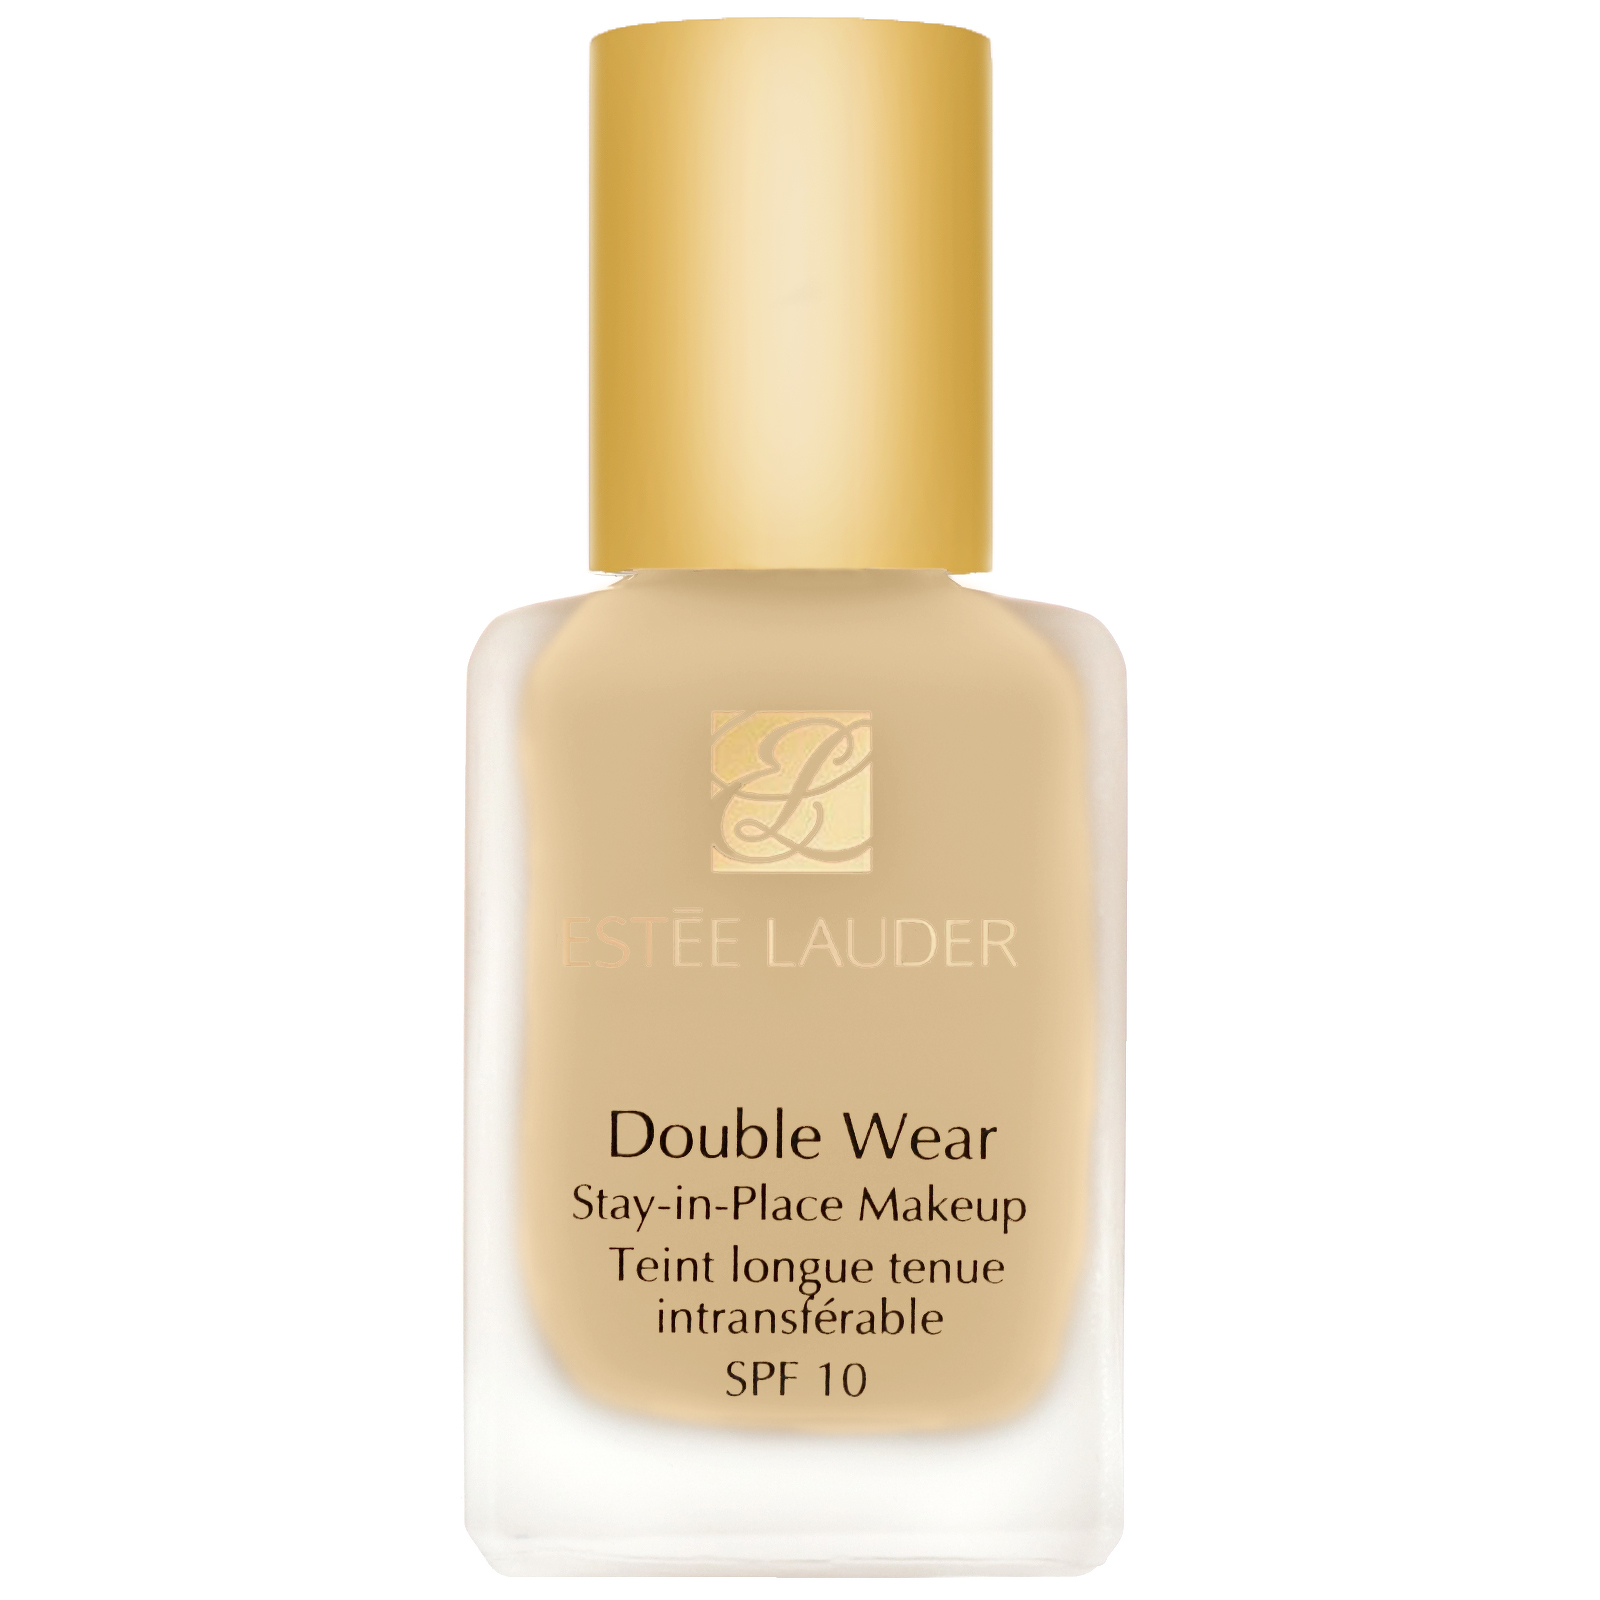 Double Wear Stay in Place Makeup SPF10 30ml foundation